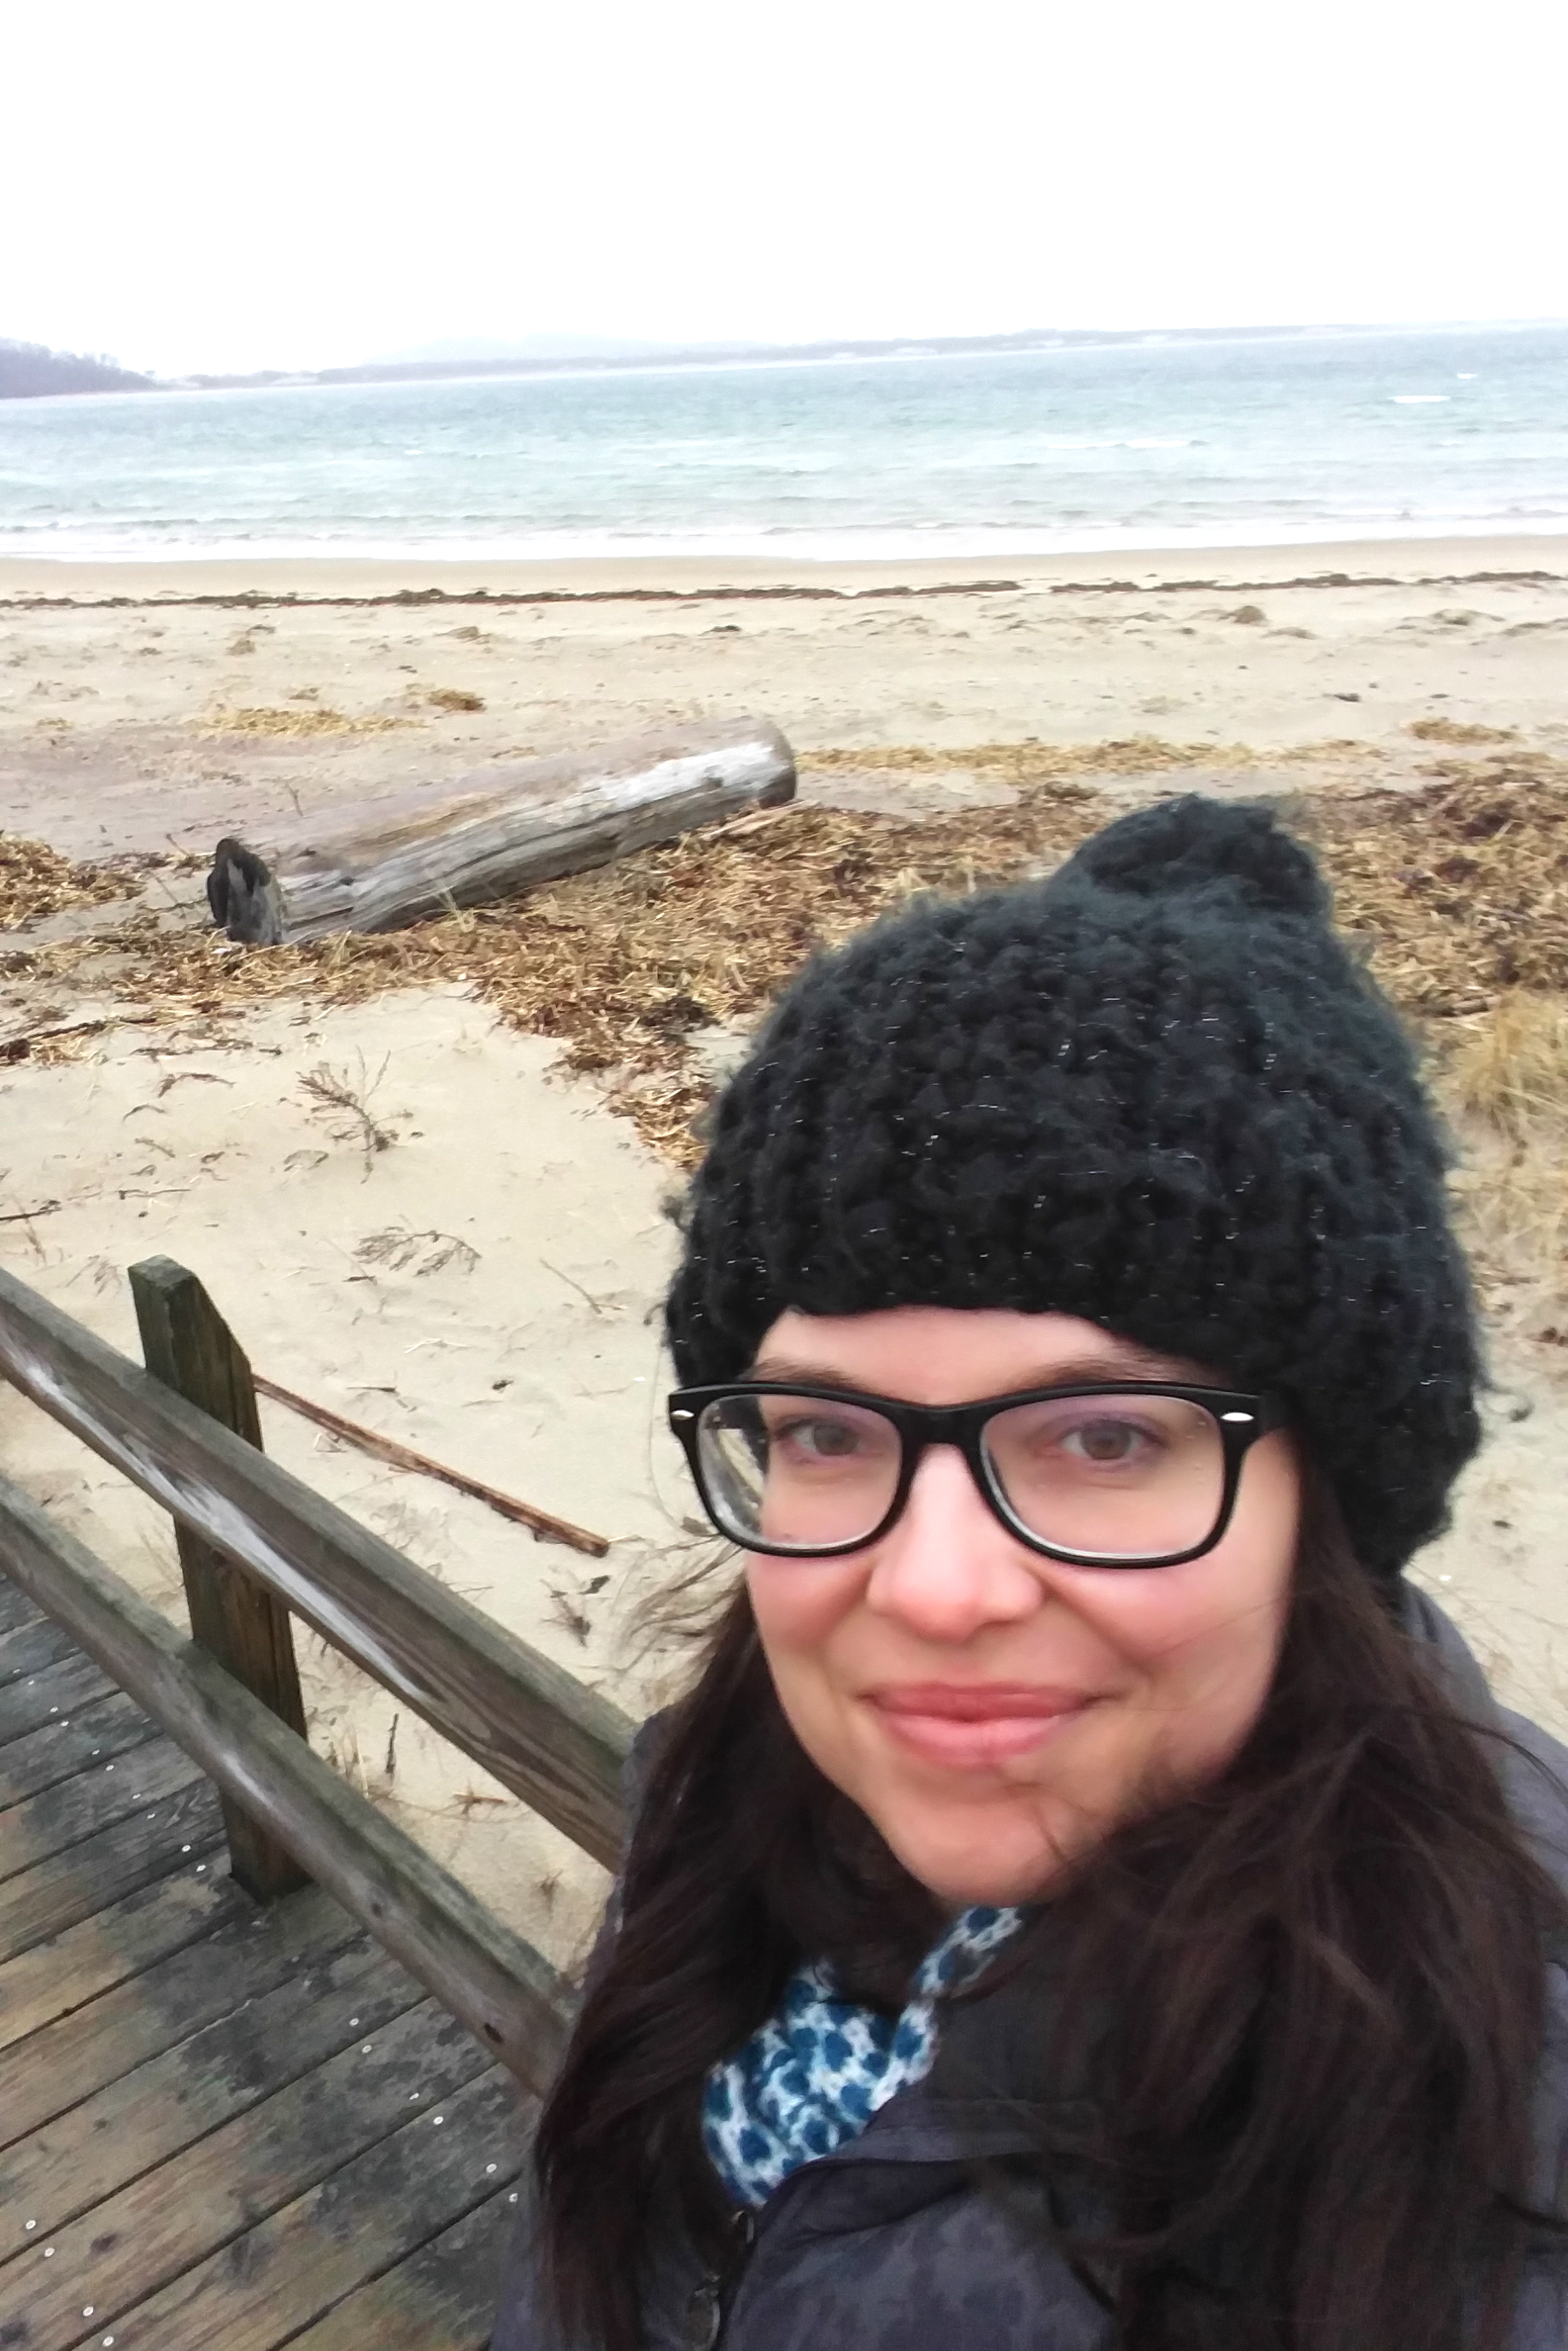 630am. No makeup, still half in my pajamas, but there I am with some coffee,the beach and the sunrise in the cold New England rain.